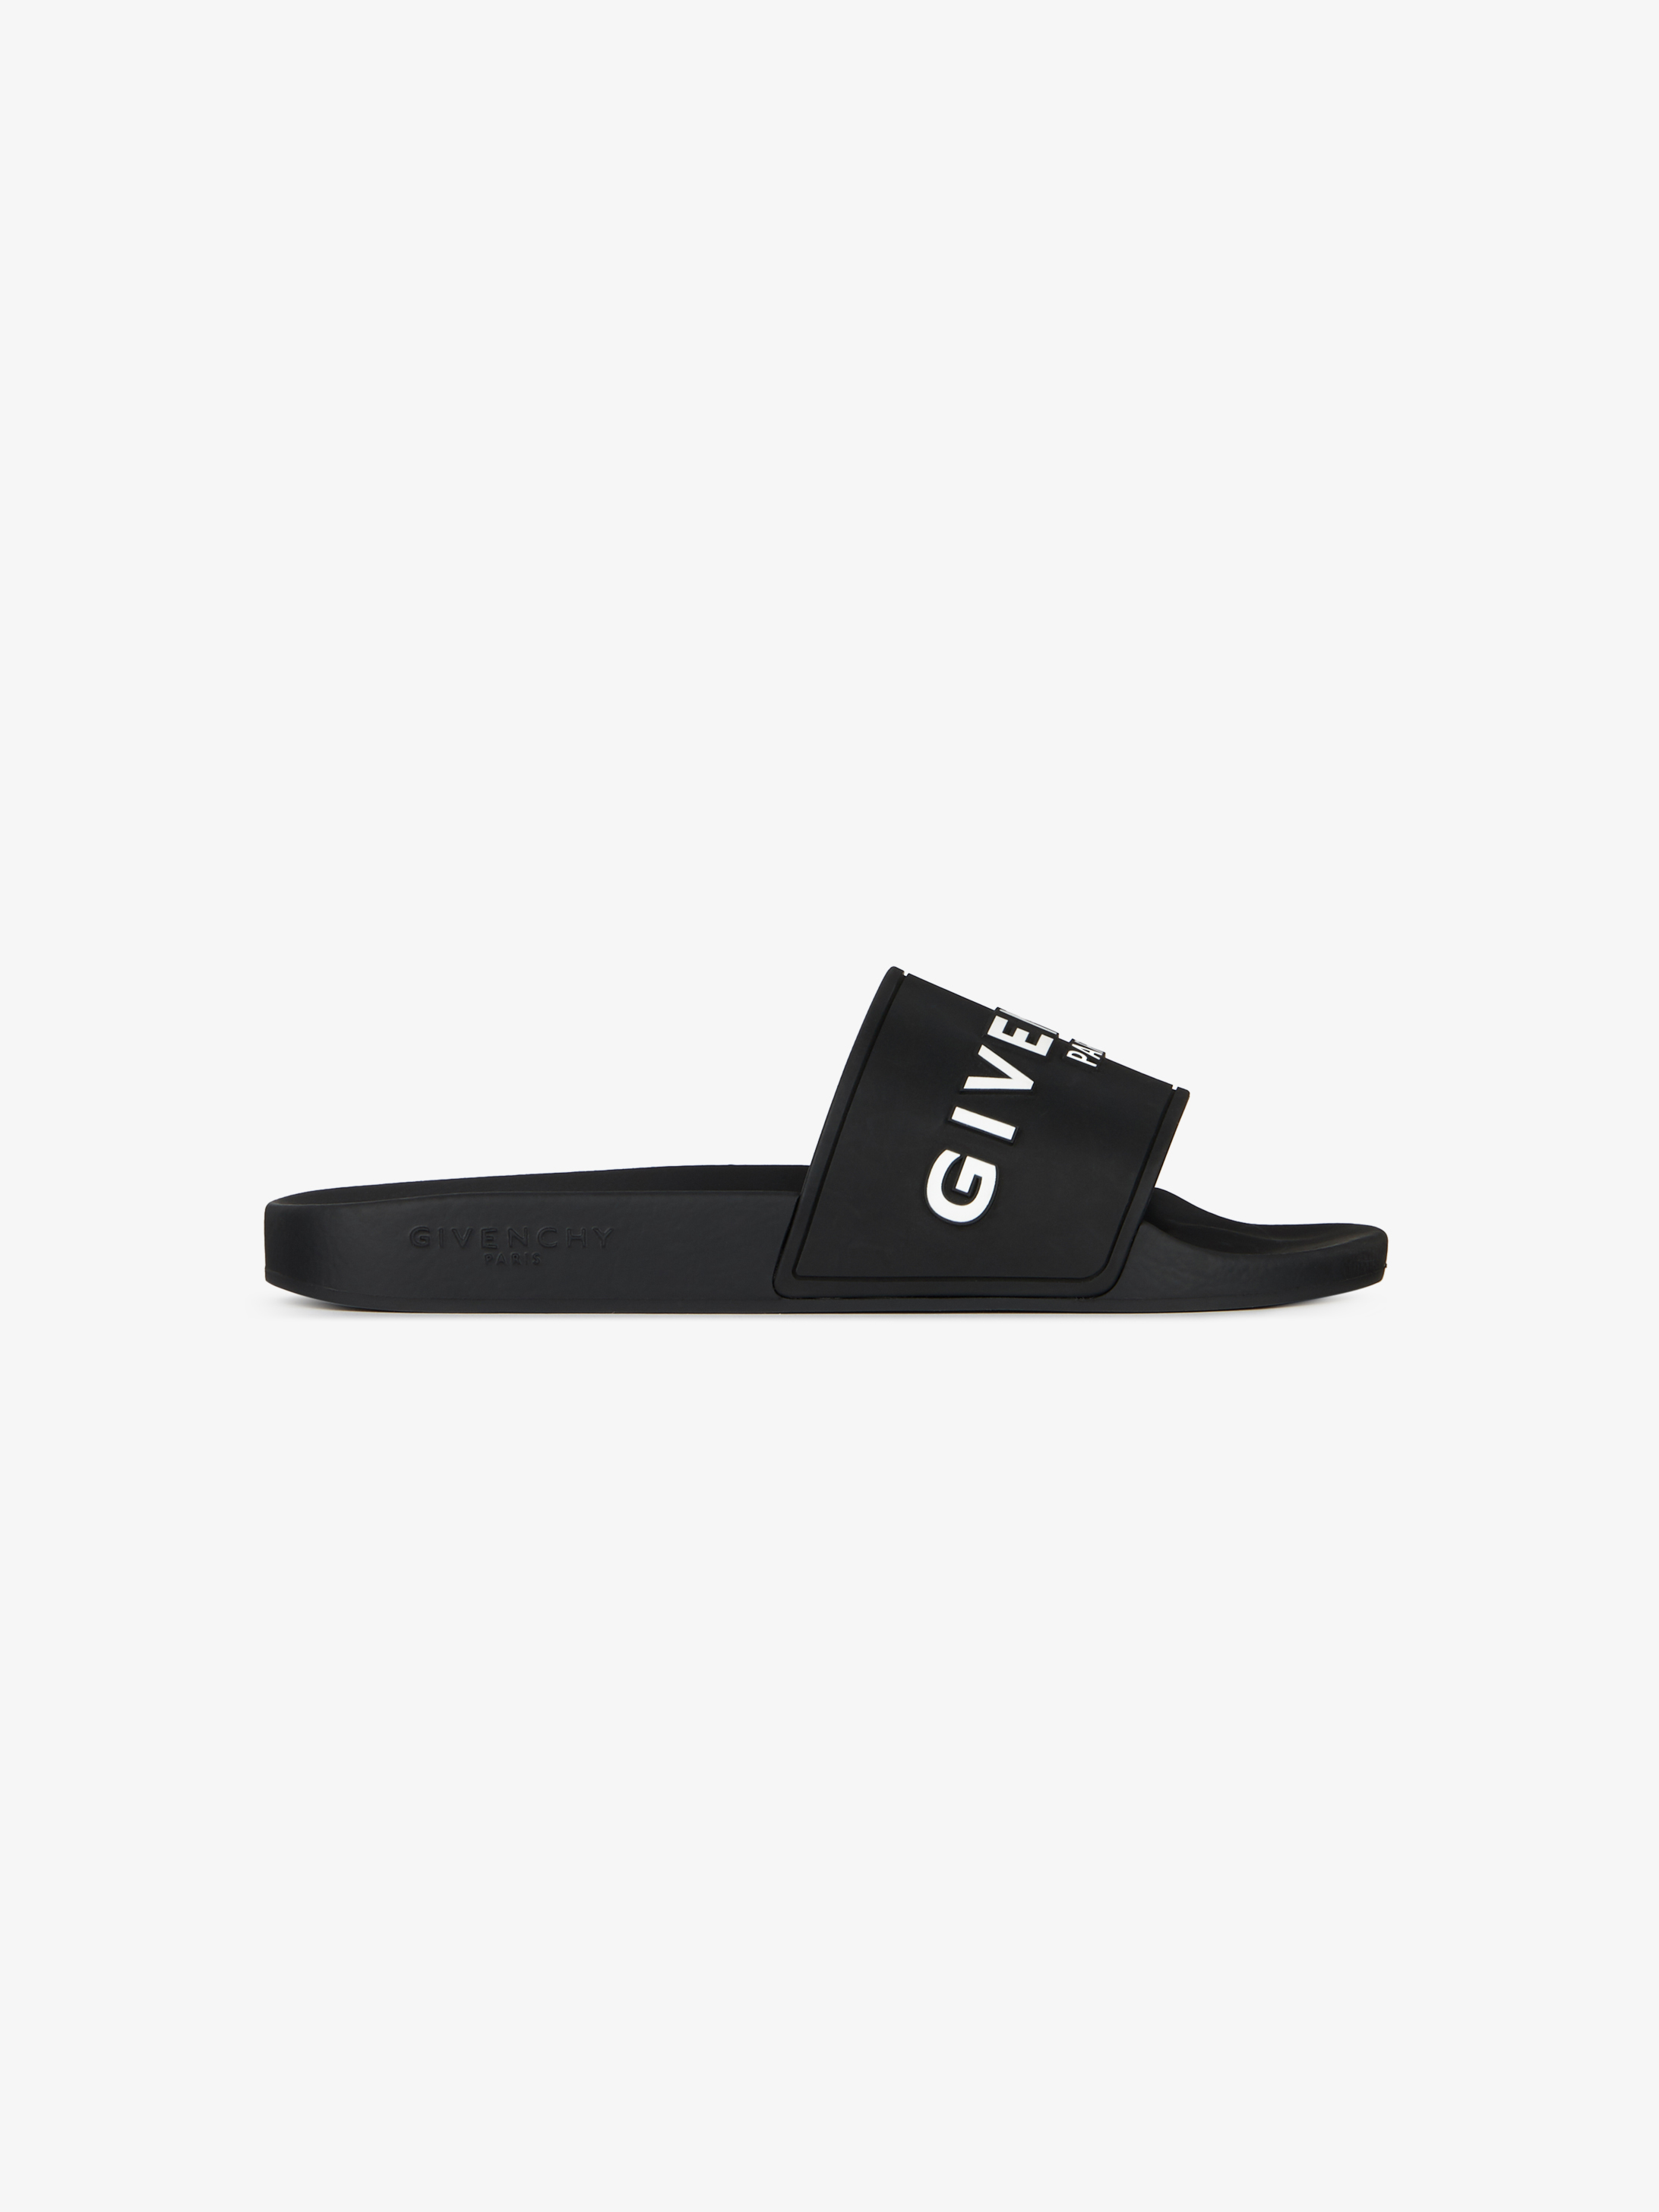 Flat sandals in GIVENCHY PARIS rubber